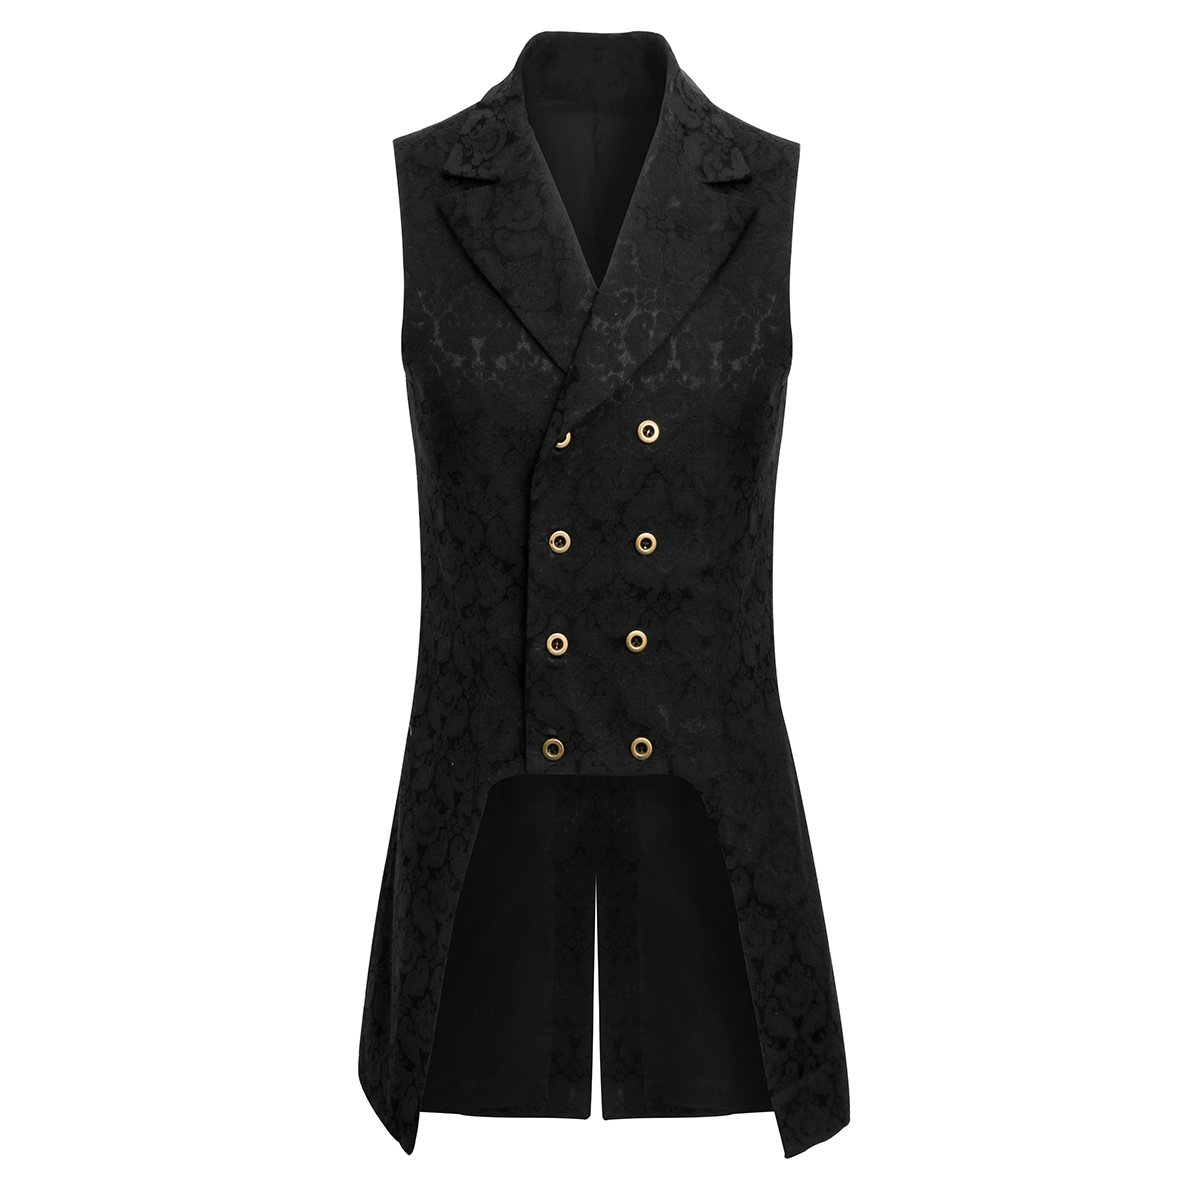 Jila Adult Mens Double Breasted Gothic Steampunk Costume Tailcoat Vest Victorian VTG Brocade Waistcoat (2X-Large, Black)